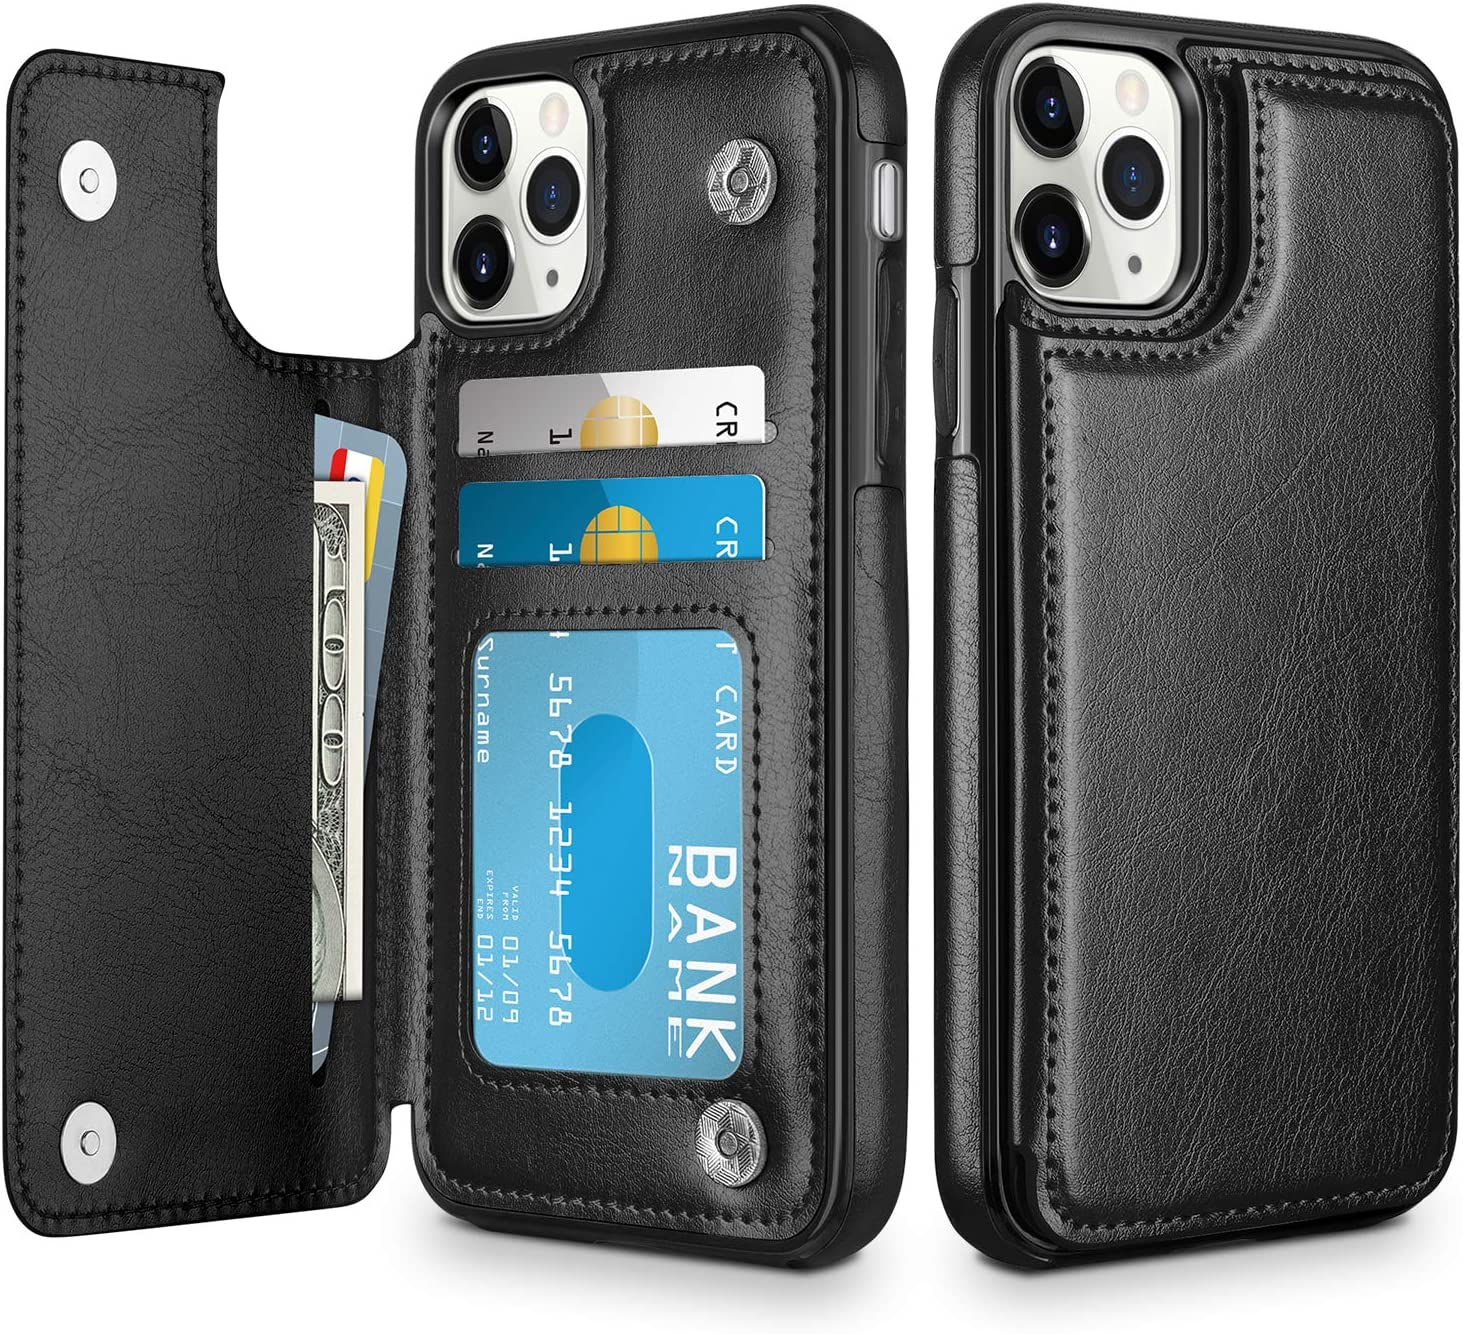 Rose Gold iPhone 11 Pro Max Case Wallet with Credit Card Holder KIHUWEY Premium Leather Magnetic Clasp Kickstand Heavy Duty Protective Cover for 11 Pro Max 6.5 Inch